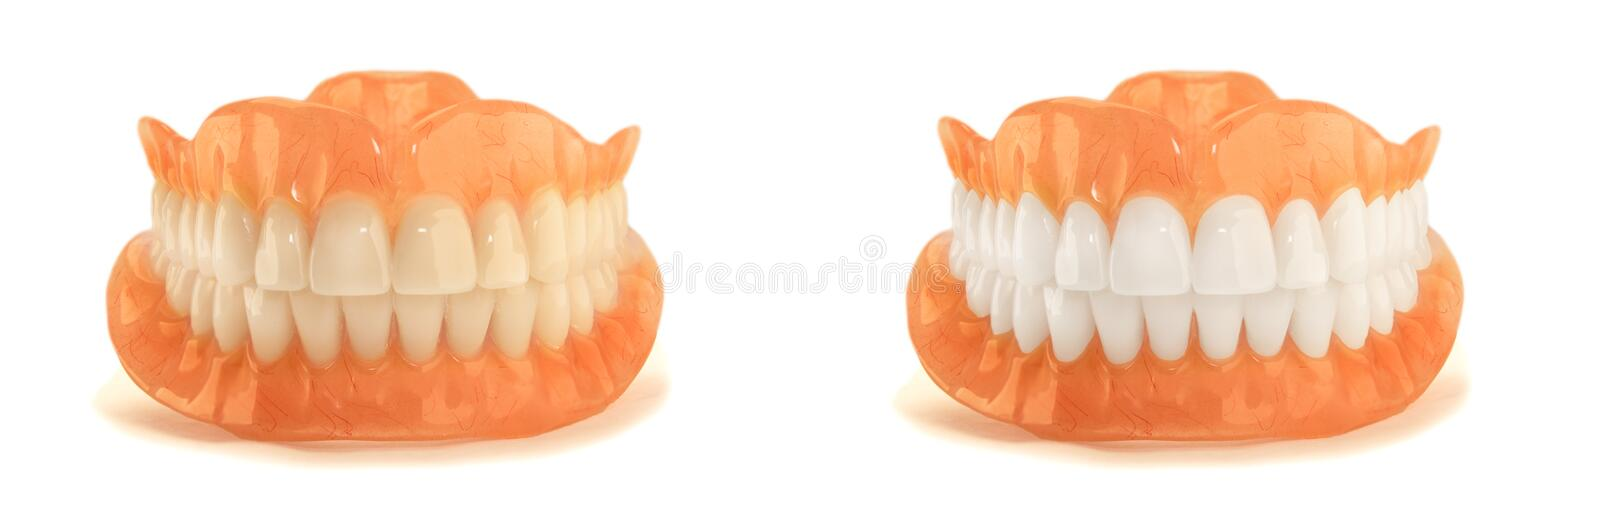 Full denture dentures close-up. Orthopedic dentistry with the us stock photos